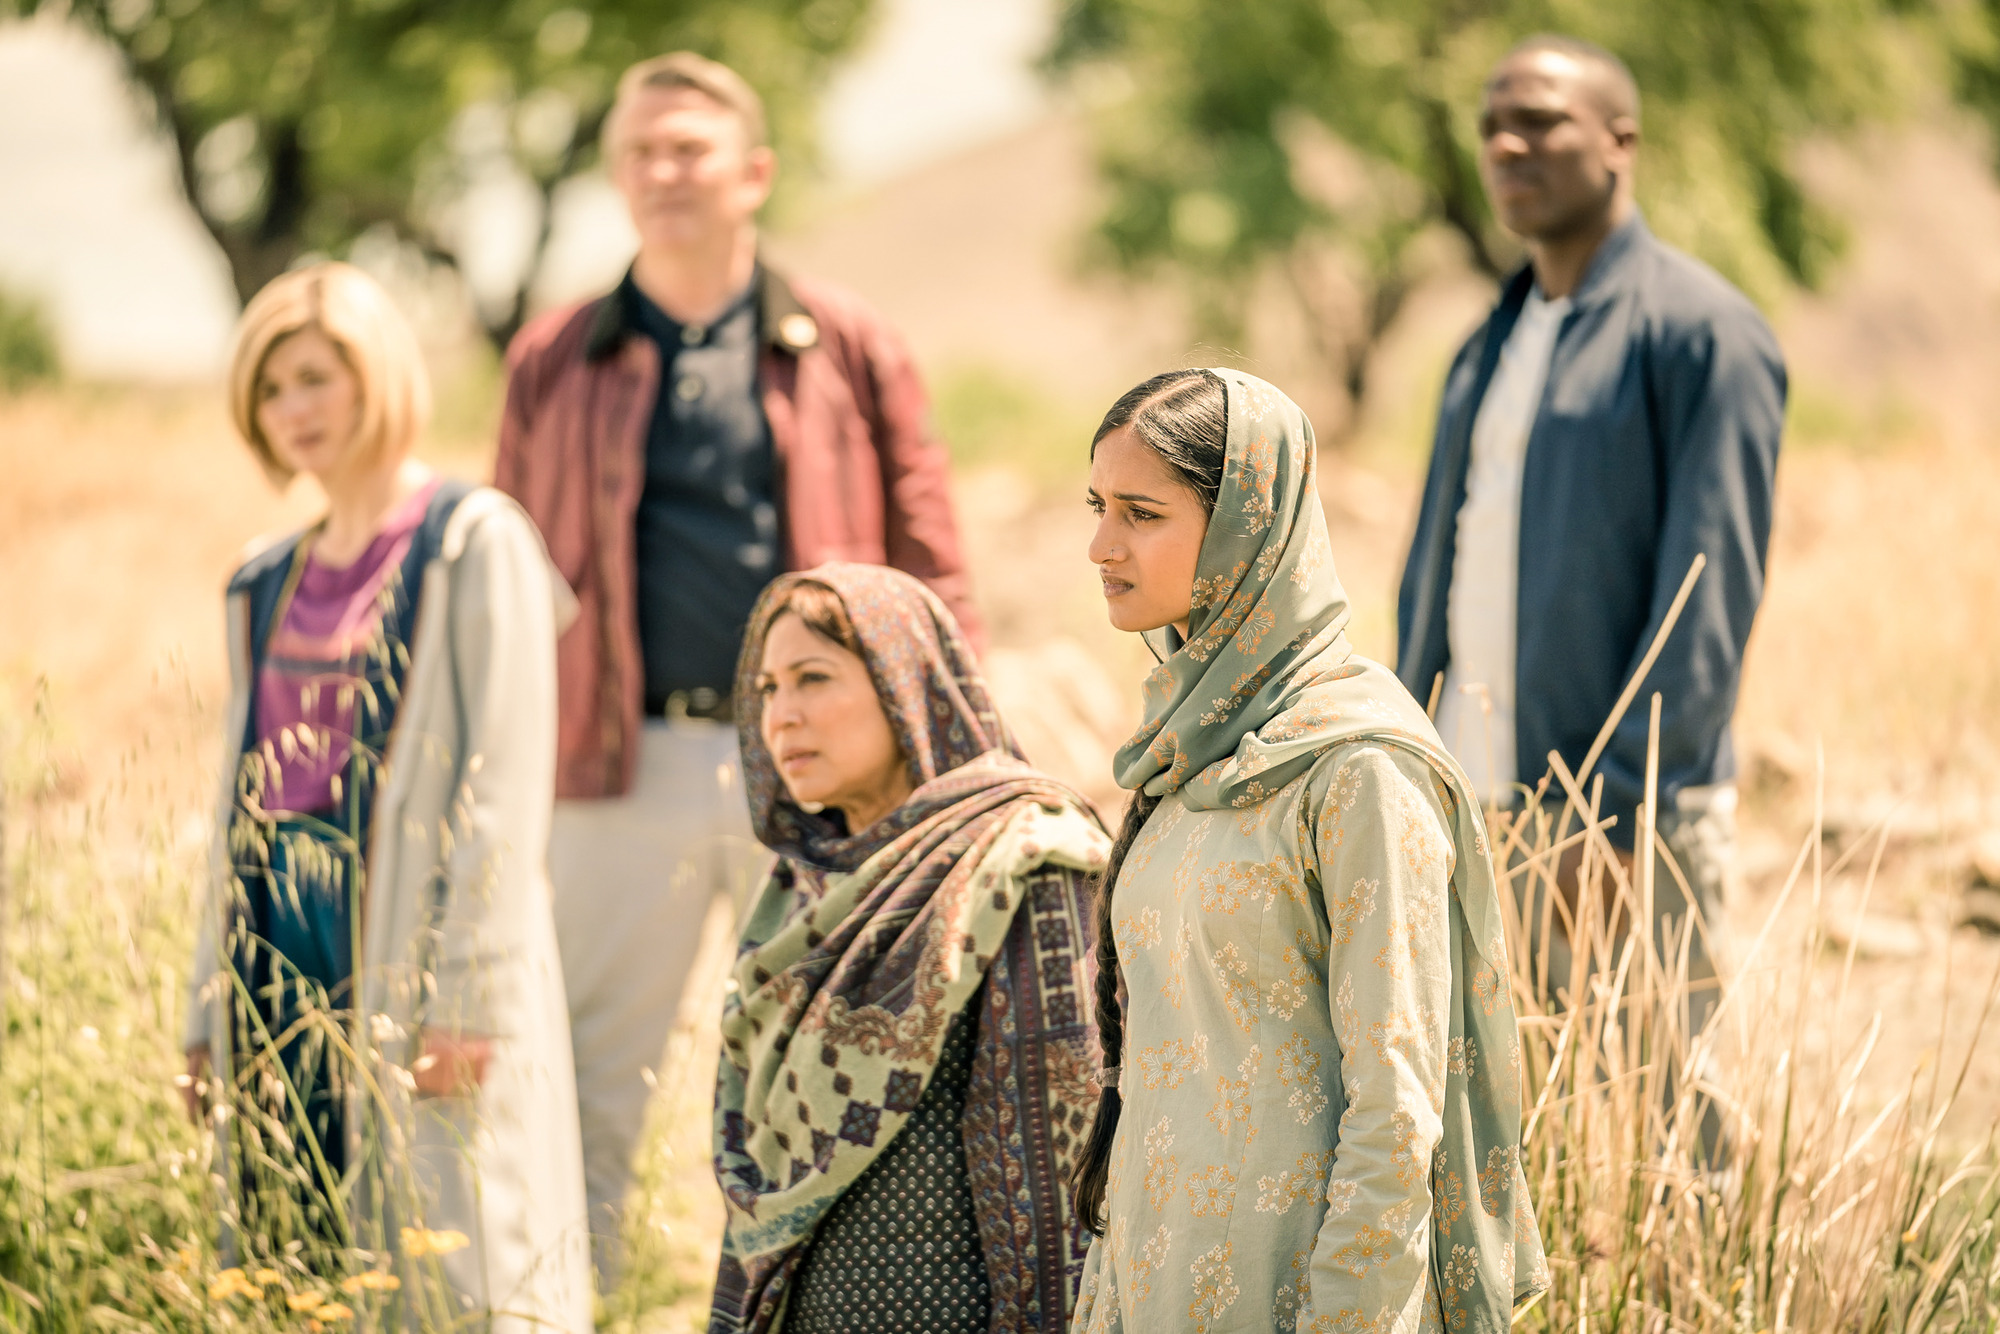 Demons Of The Punjab: The Doctor (Jodie Whittaker), Graham (Bradley Walsh), Hasna (Shaheen Khan), Umbreen (Amita Suman), Ryan (Tosin Cole) (Credit: BBC Studios (Ben Blackall))